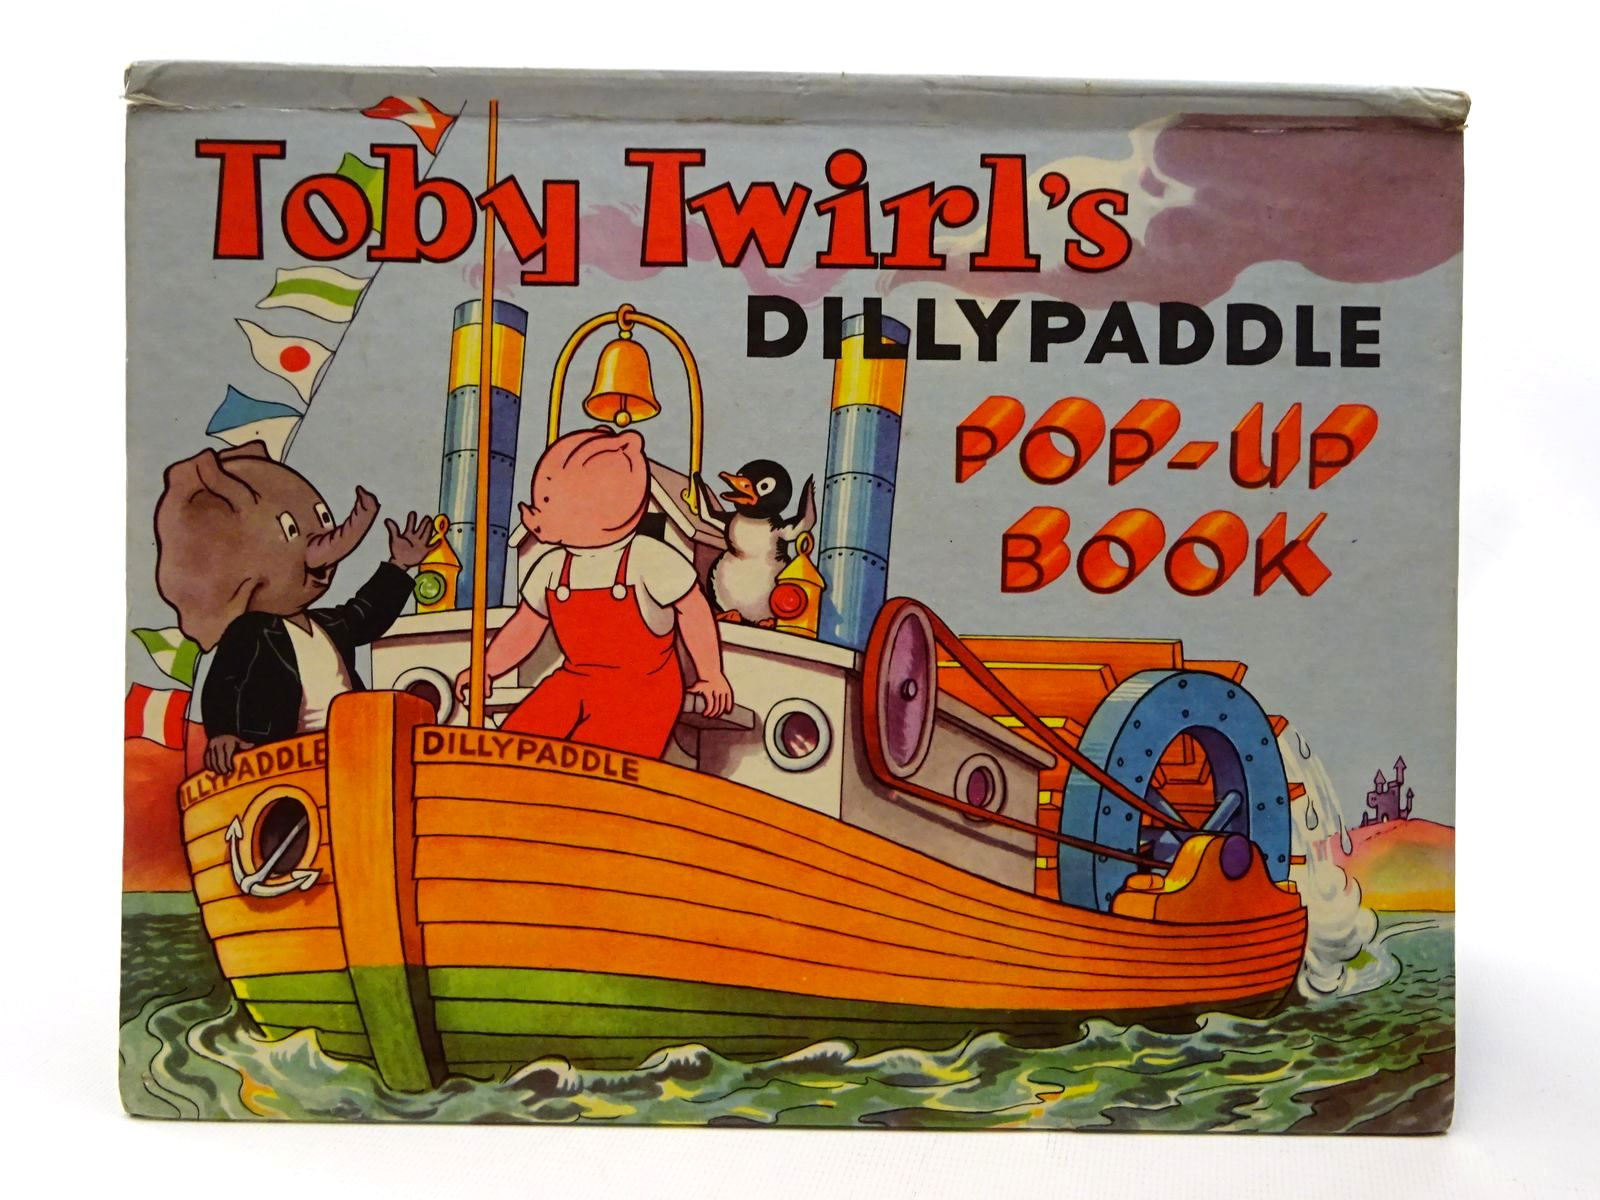 Photo of TOBY TWIRL'S DILLYPADDLE POP-UP BOOK published by Sampson Low (STOCK CODE: 2124277)  for sale by Stella & Rose's Books